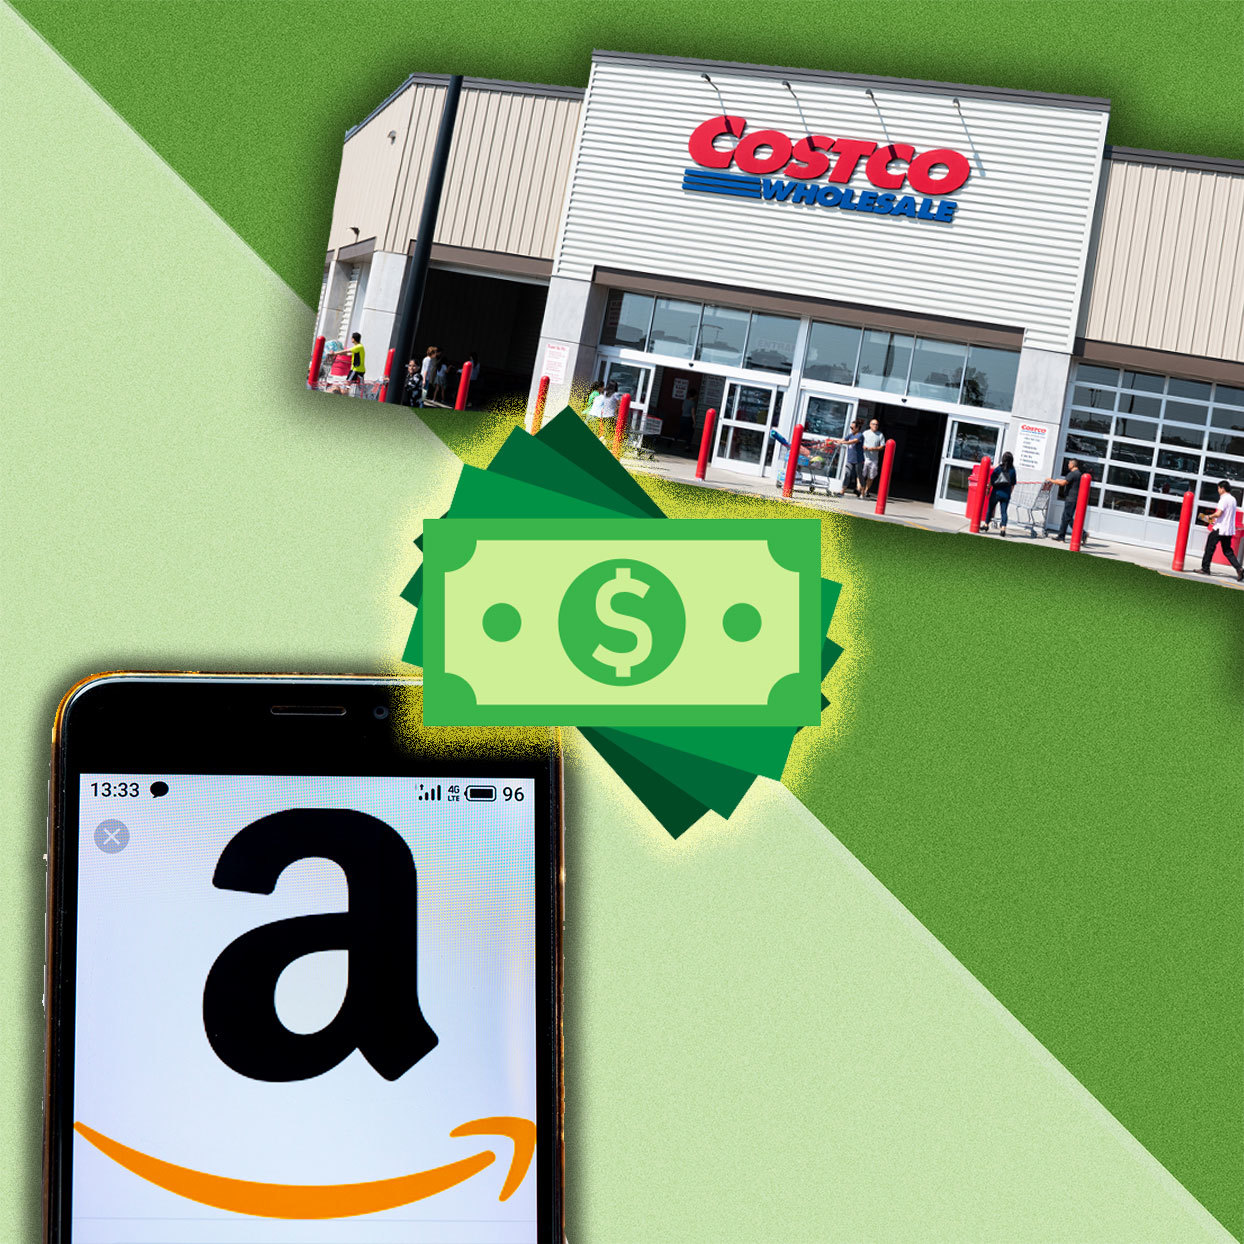 a smart phone with the amazon logo on the screen, a money icon, and an image of the Costco storefront